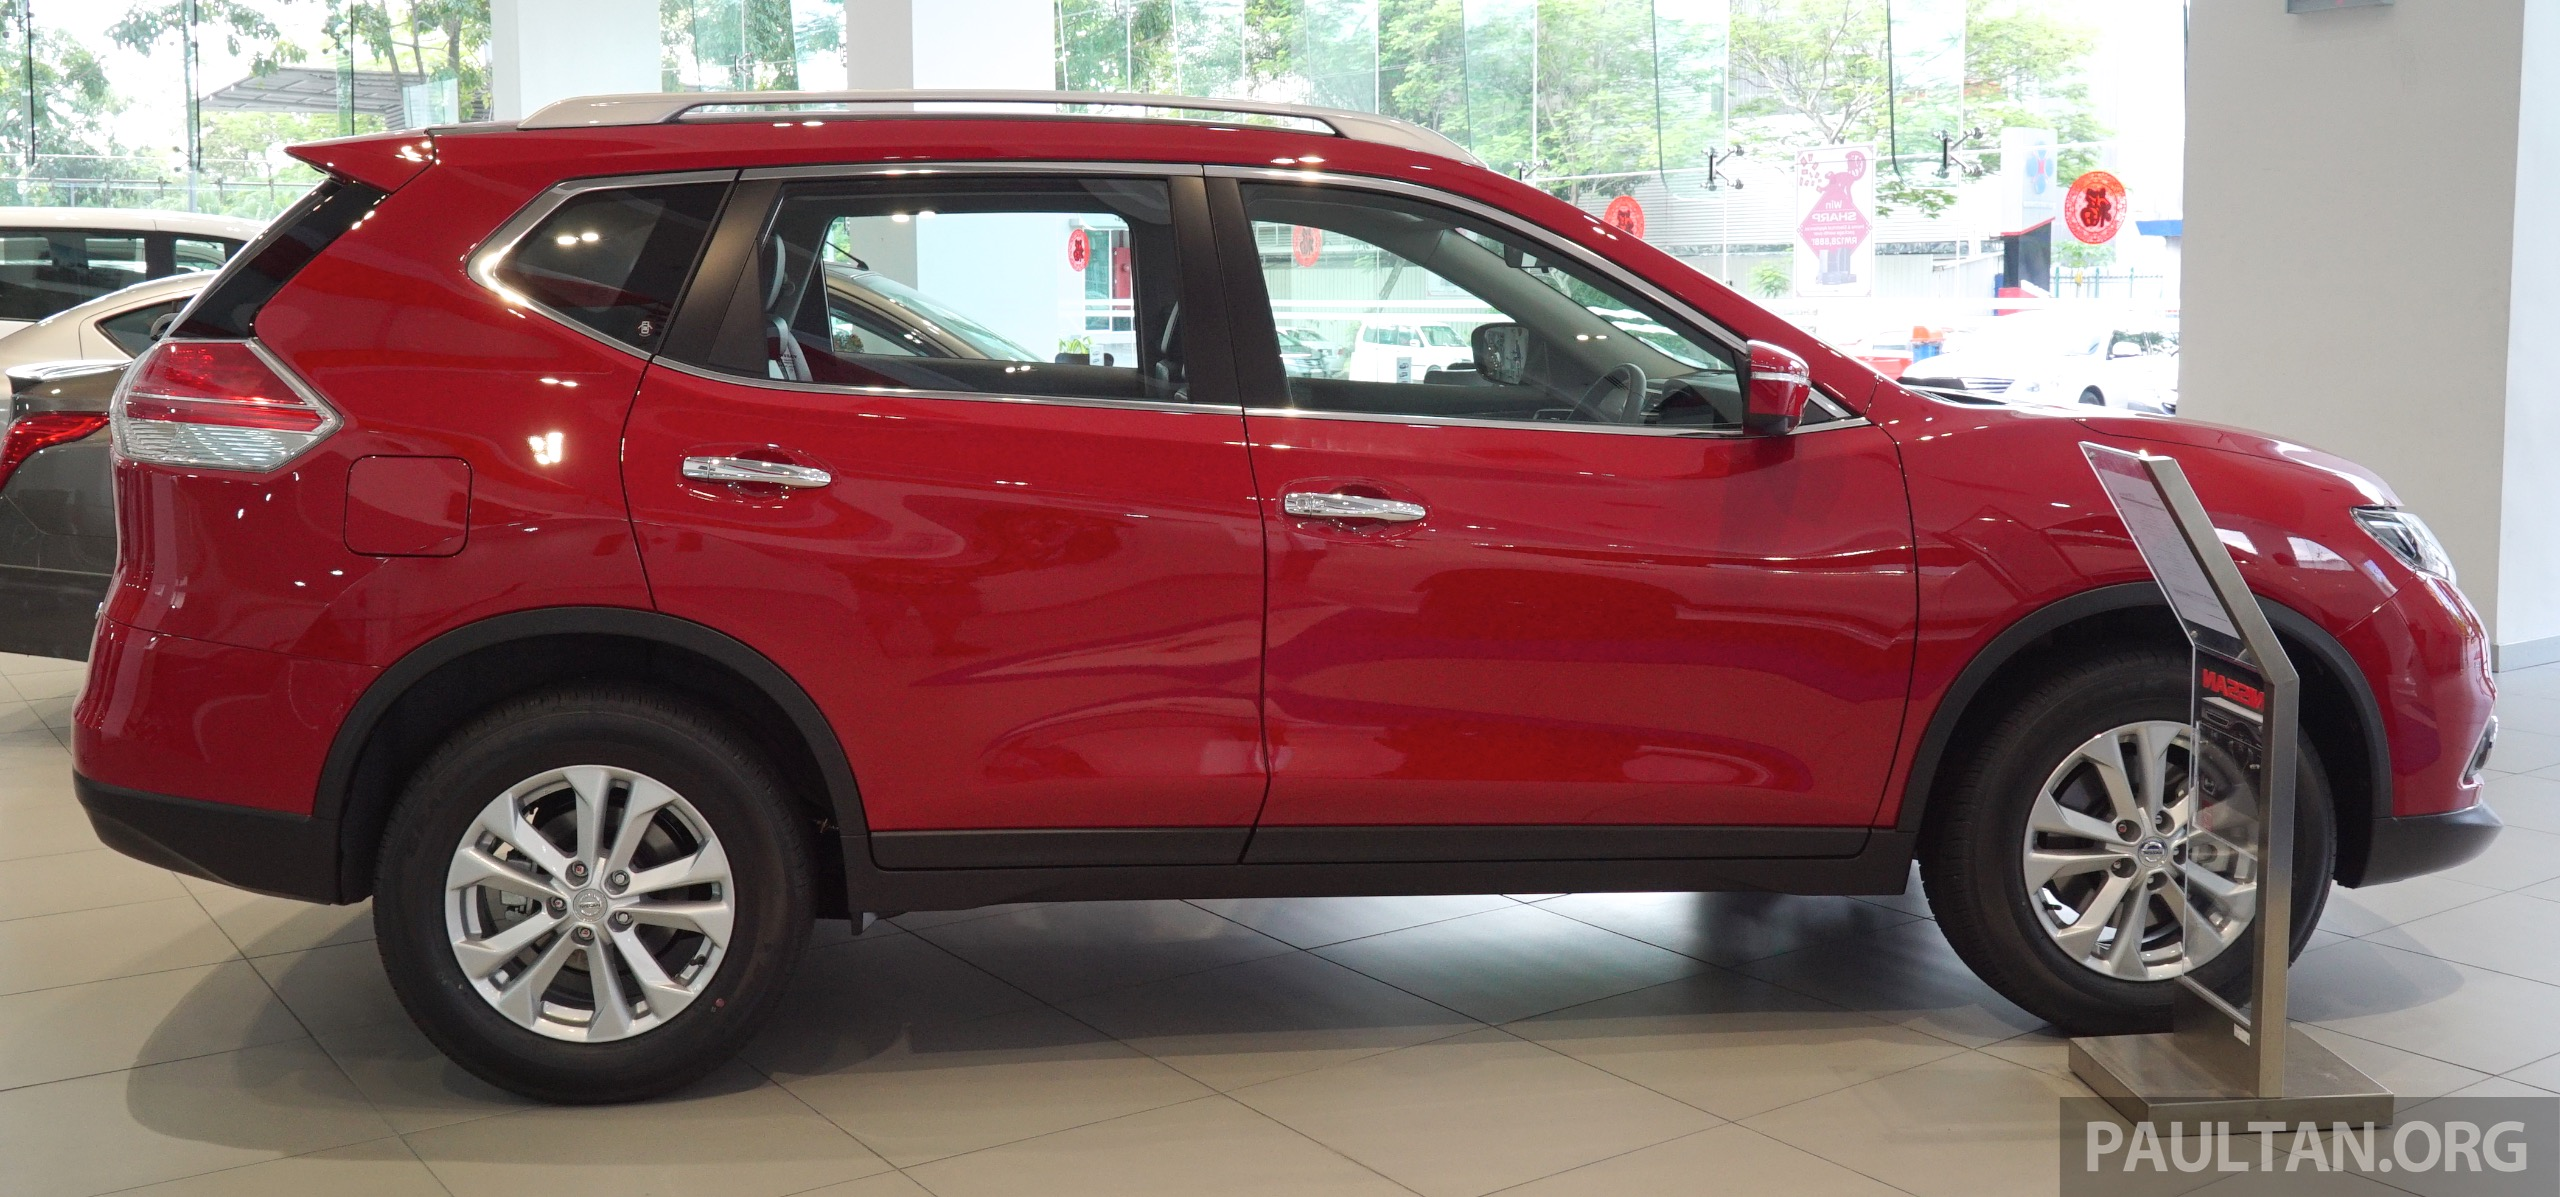 Nissan X Trail Now Available In Flaming Red For CNY Image 432839